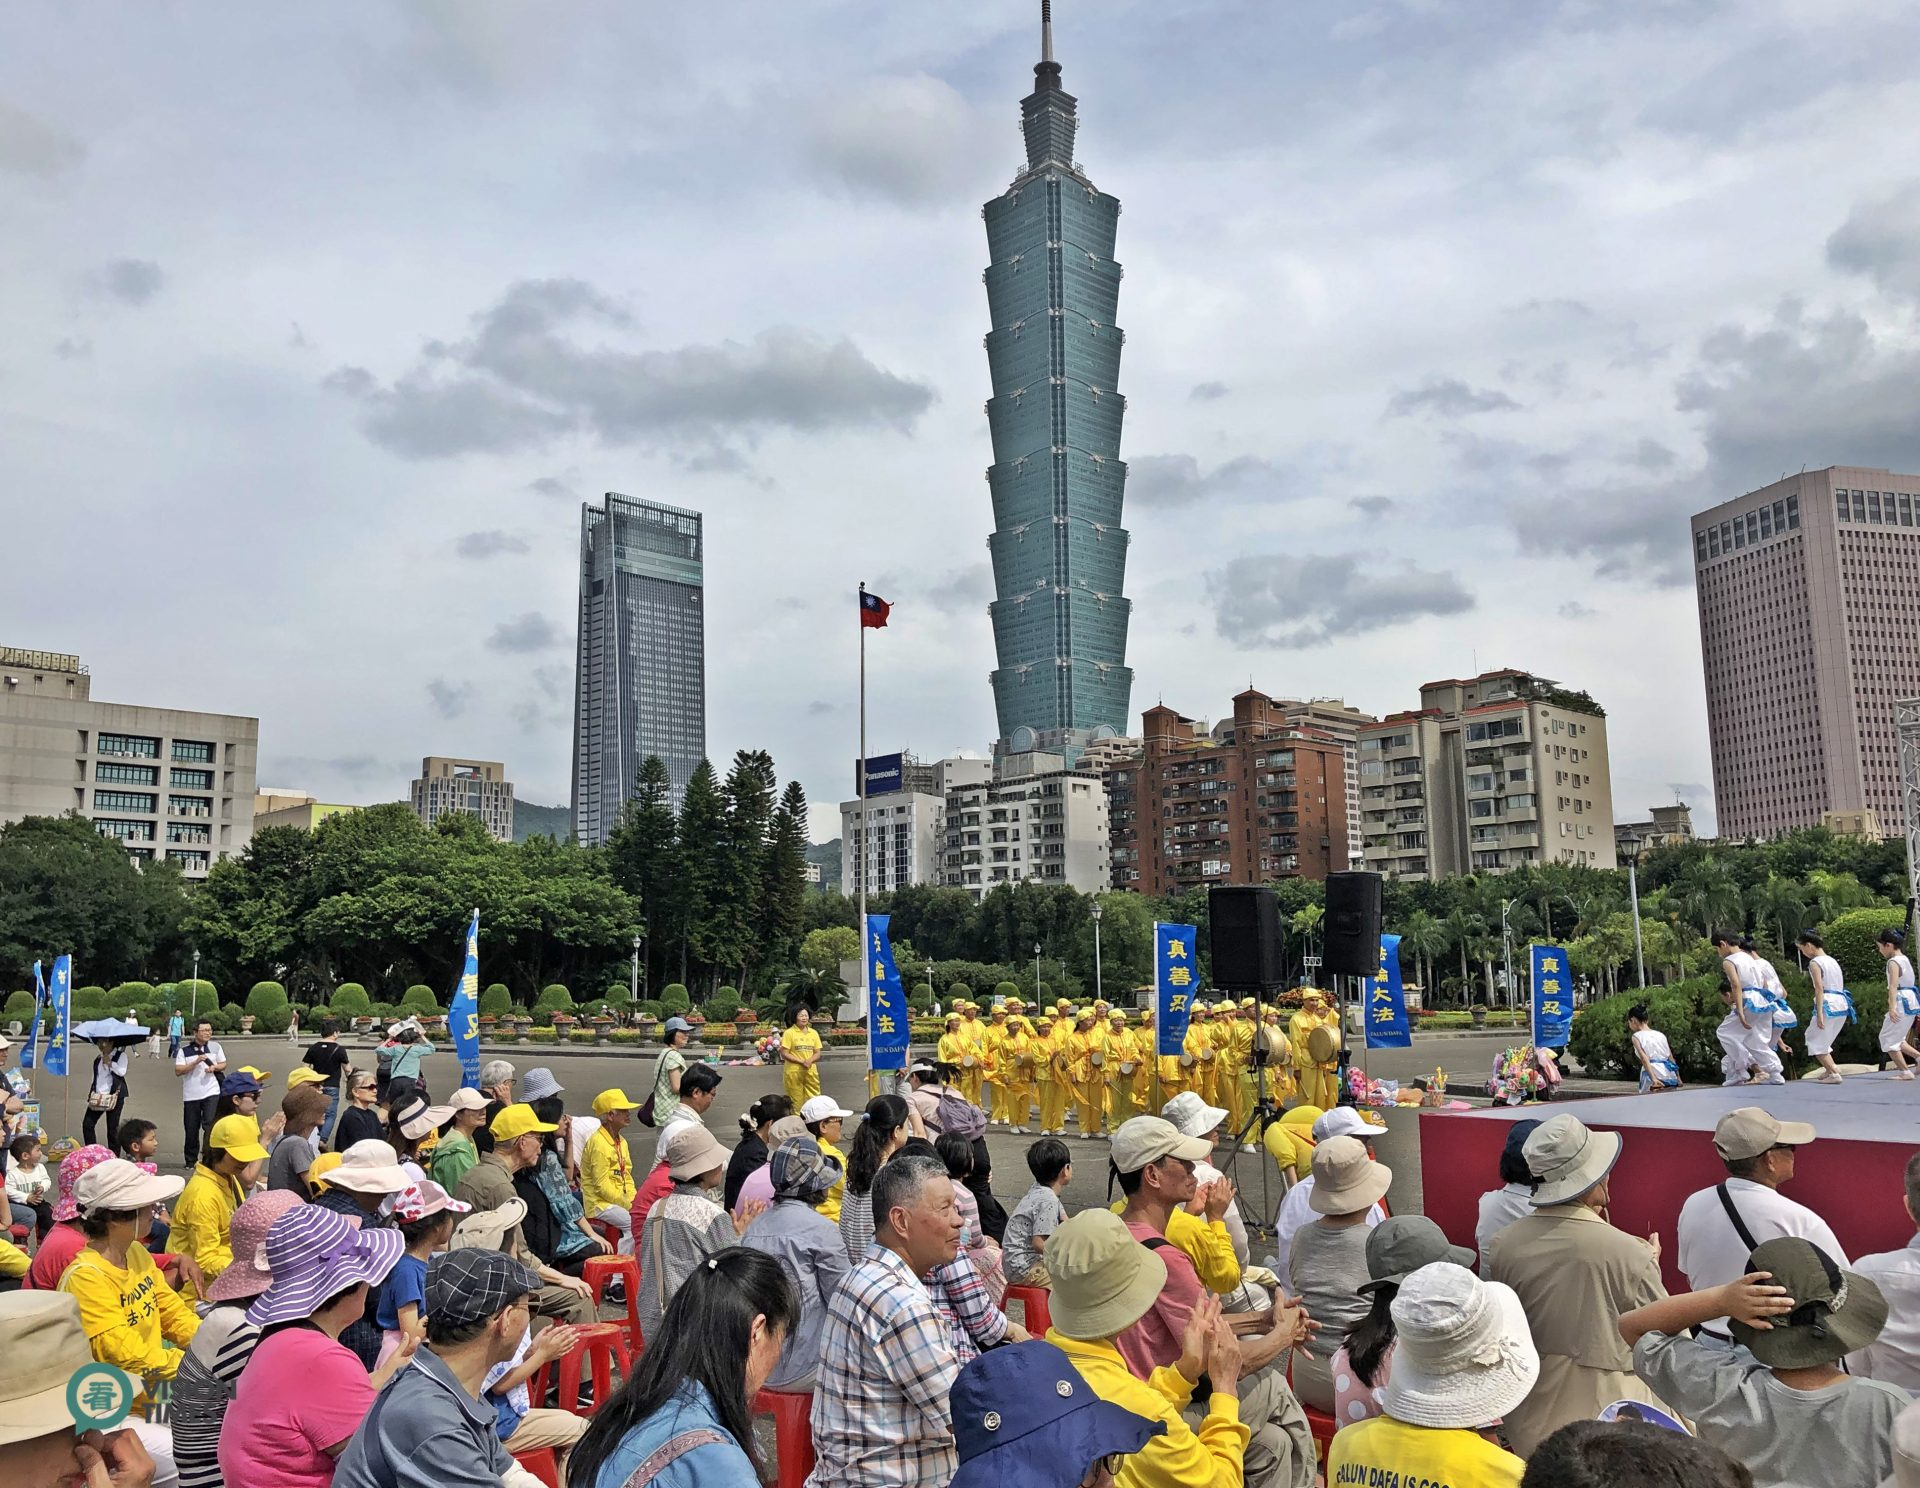 The celebration of 2019 World Falun Dafa Day is participated by over 1,000 practitioners in Taipei City. (Image: Billy Shyu / Vision Times)